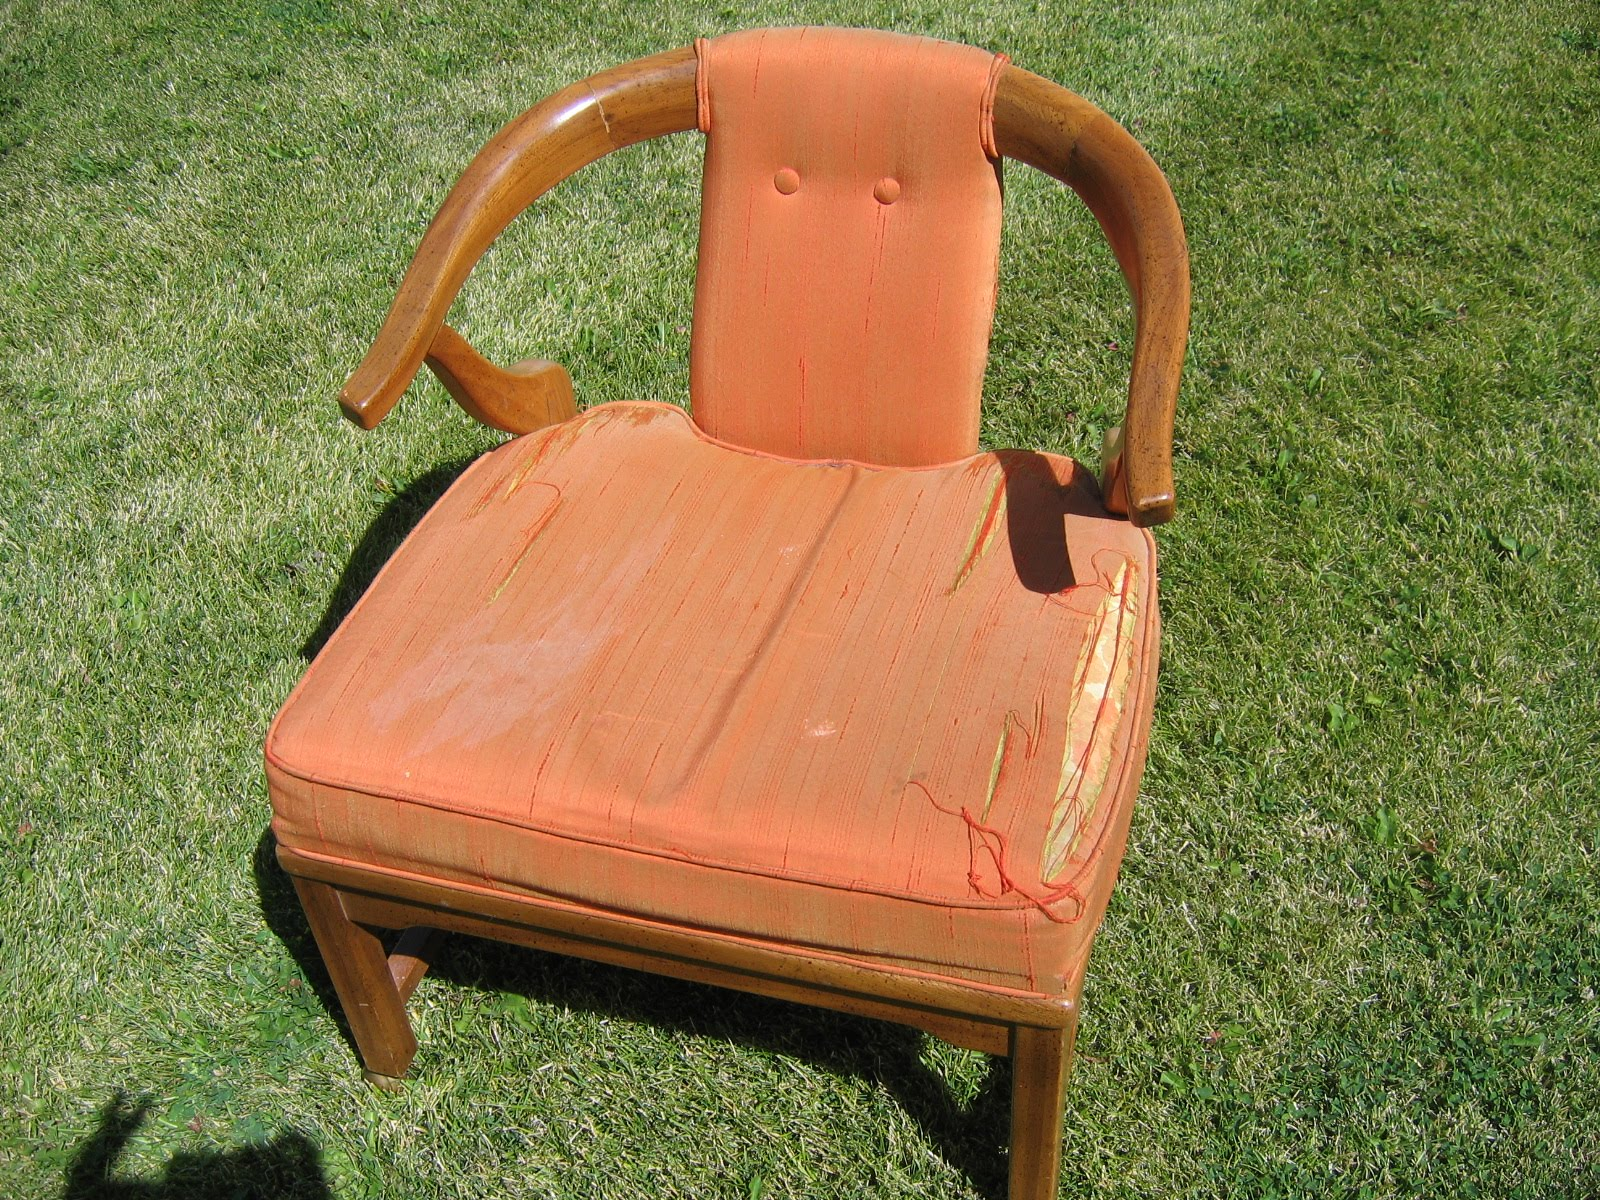 Camille's Casa: Hello, Ugly Chair